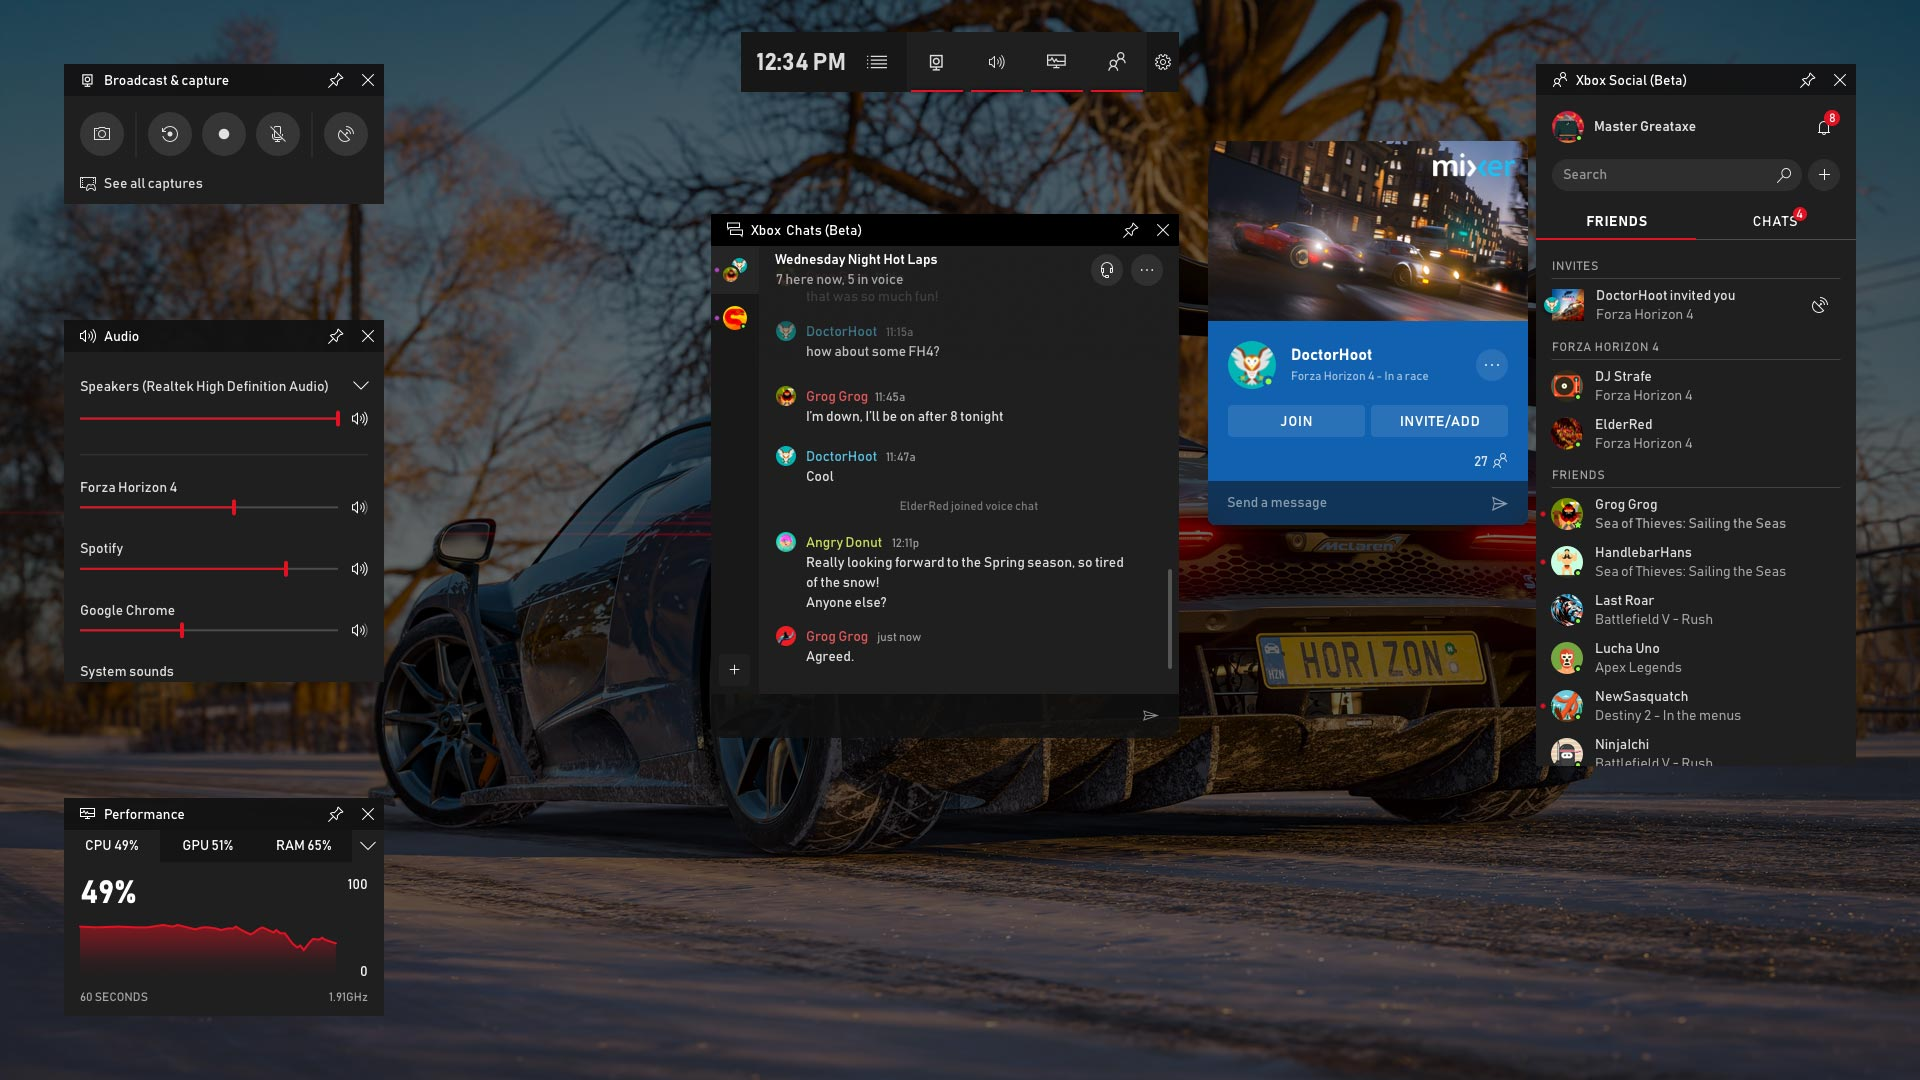 Microsoft Windows 10 Game Bar - Apr 2019 update